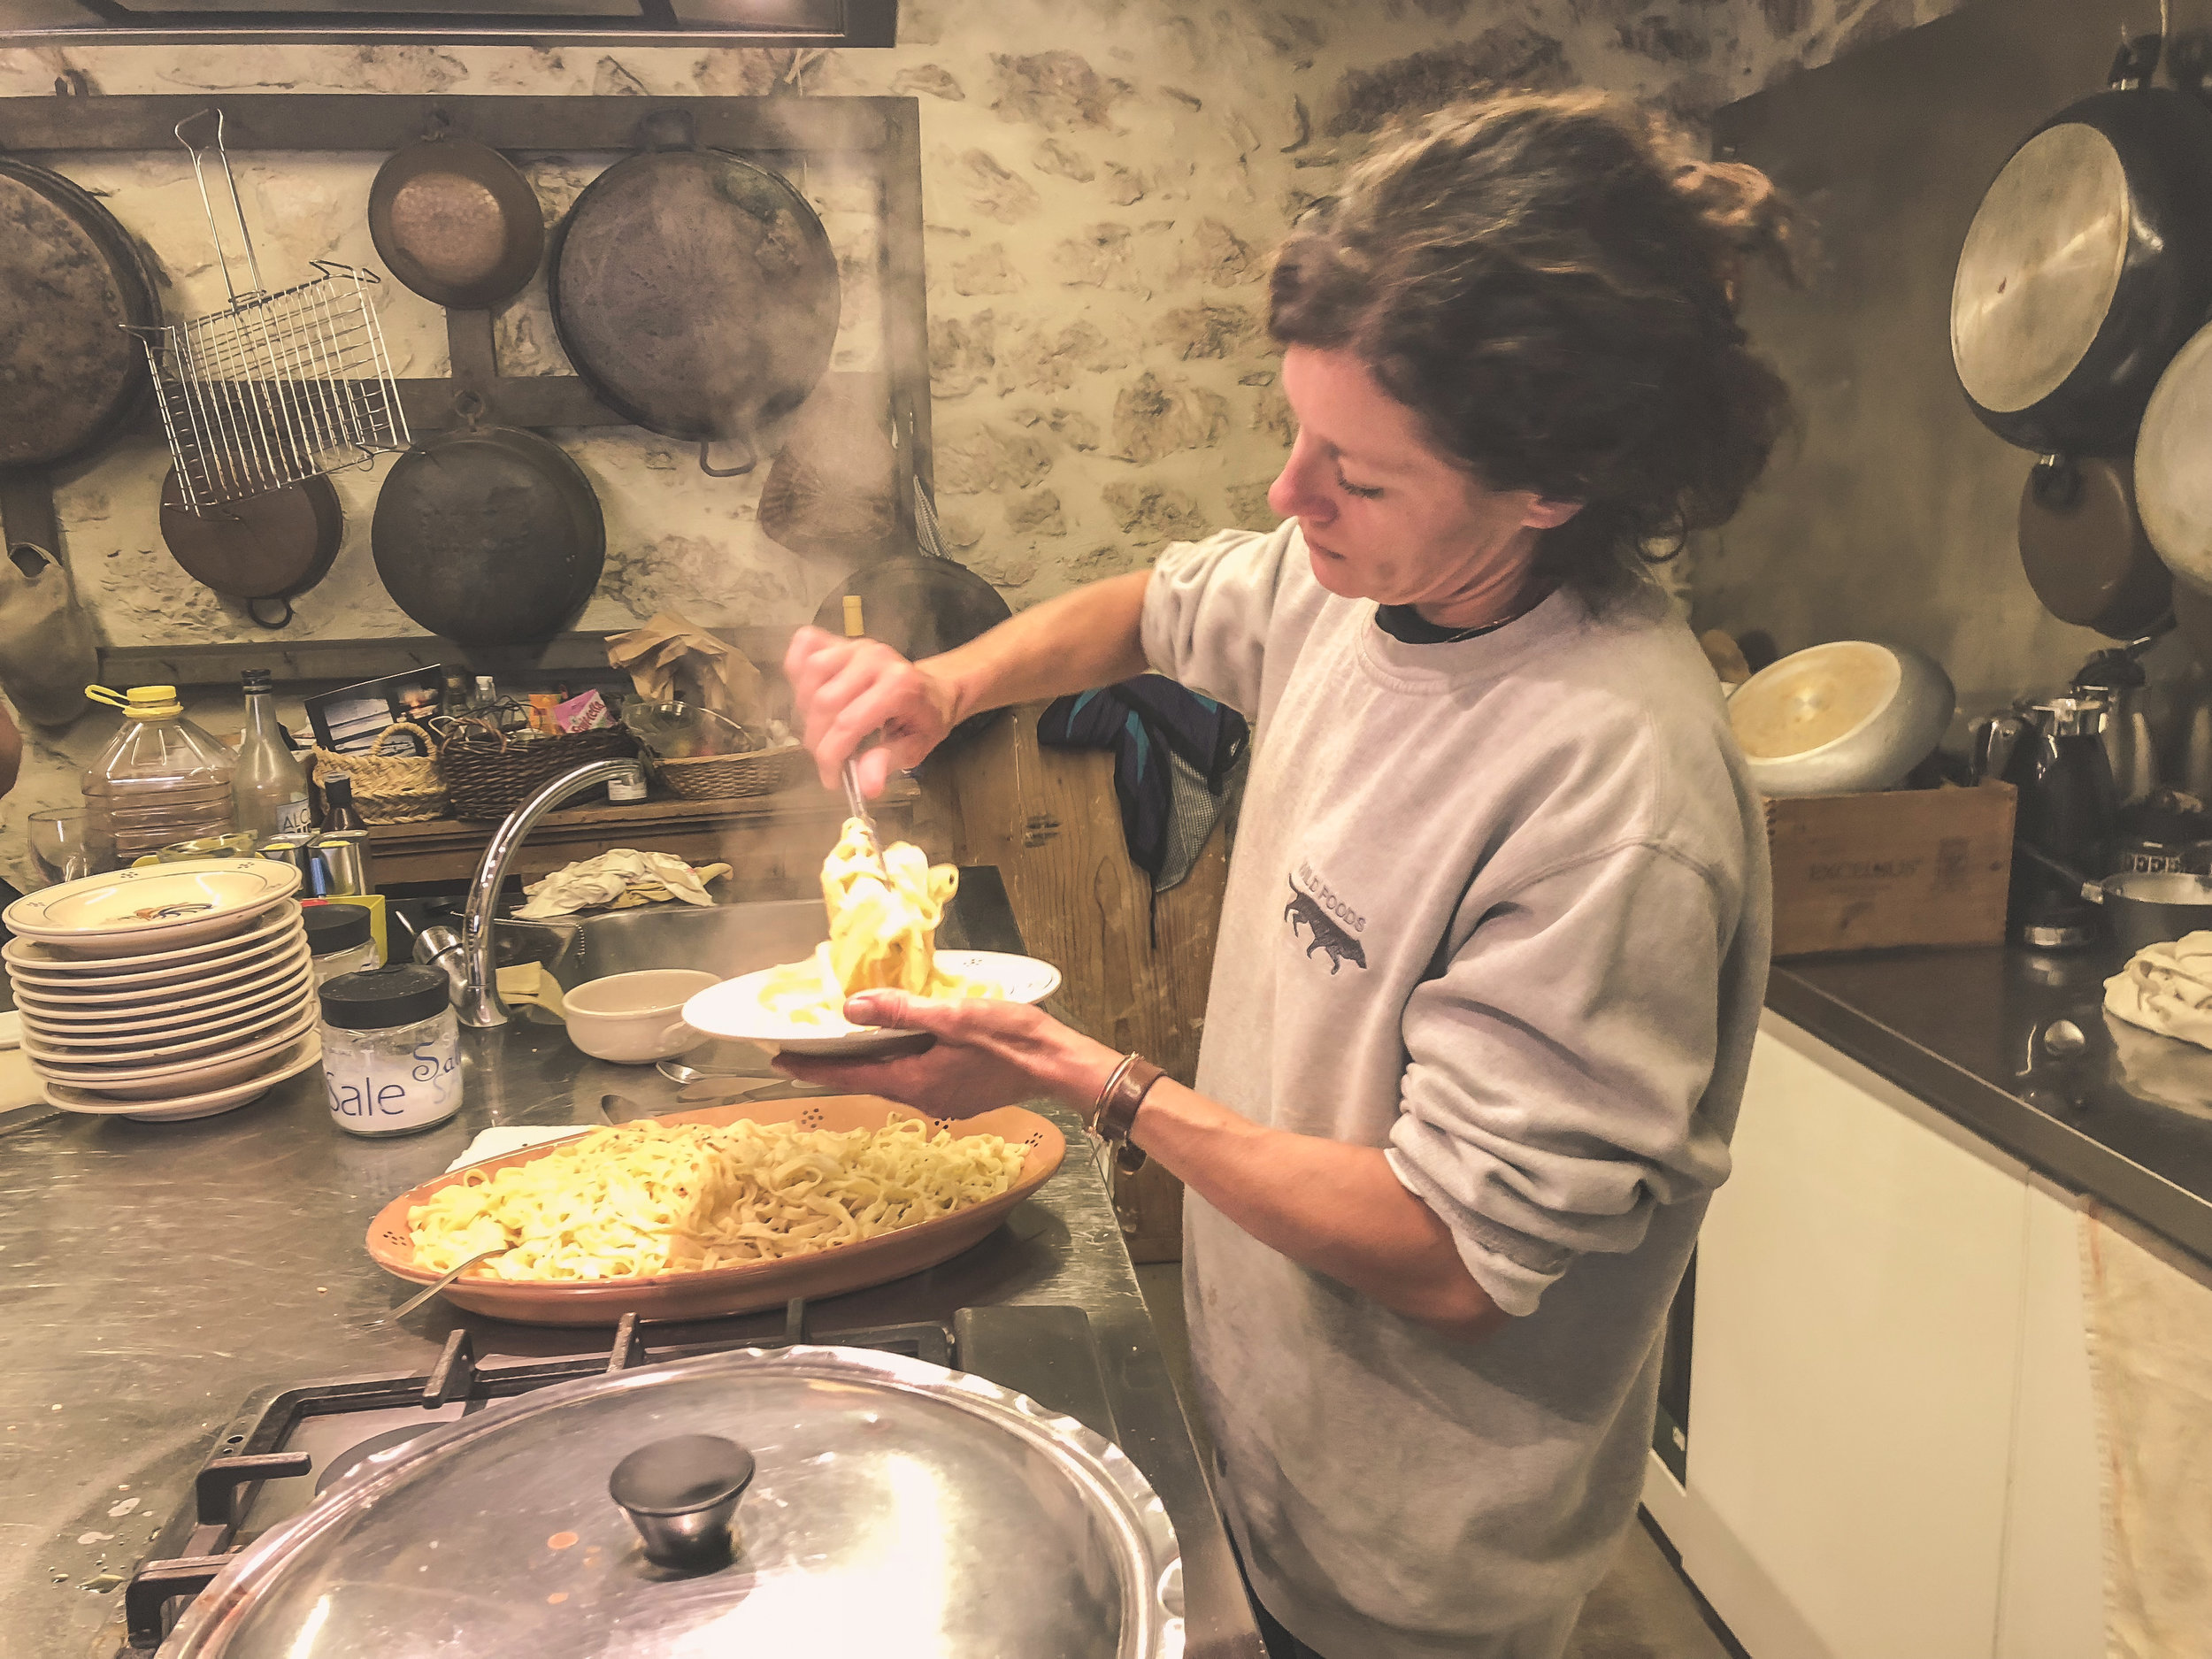 Francesca prepares homemade pasta with fresh truffle sauce